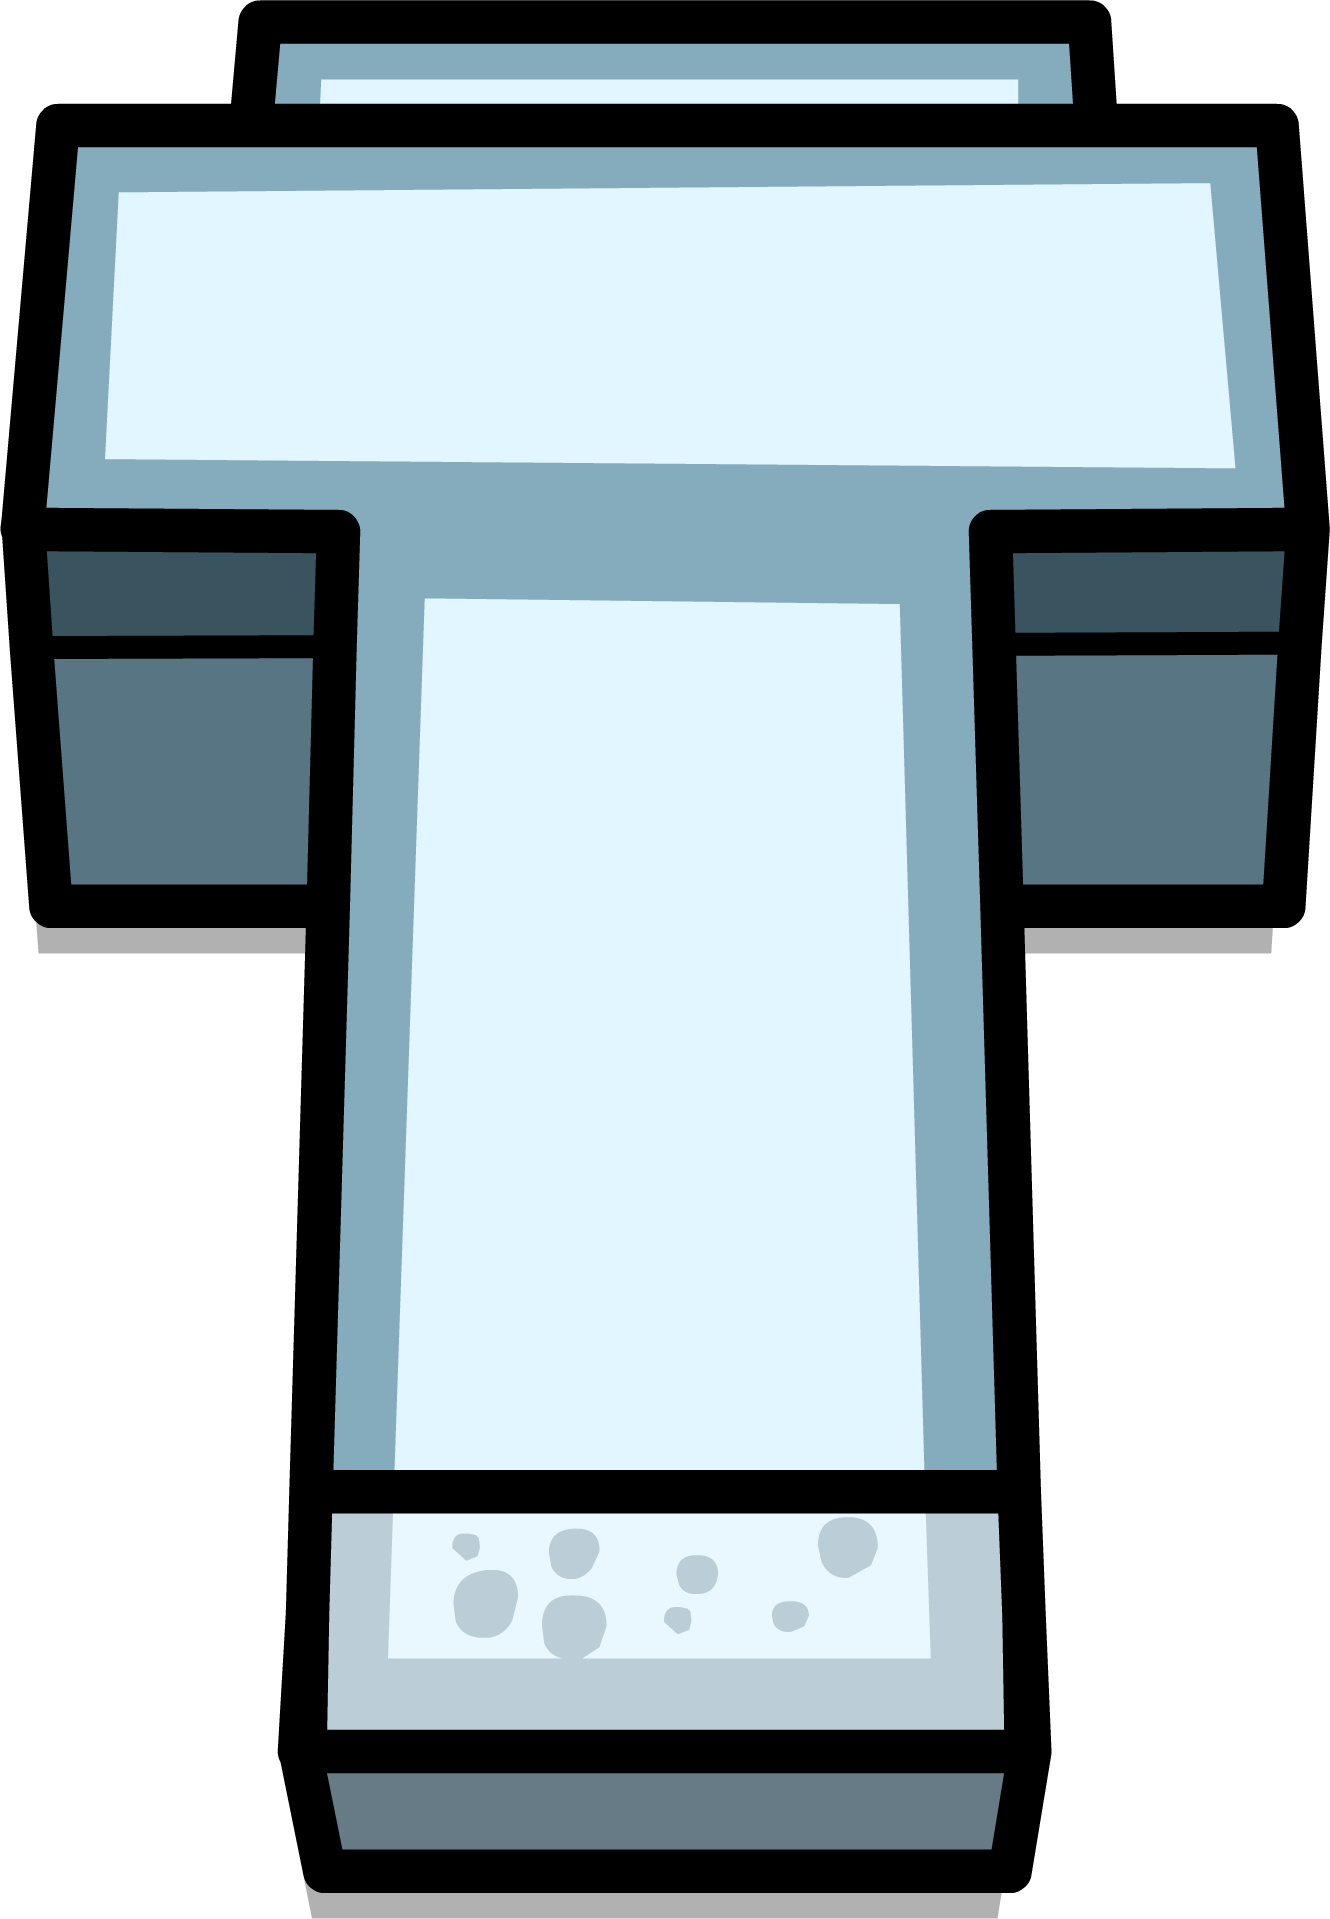 Diving clipart diving board. Image sprite png club